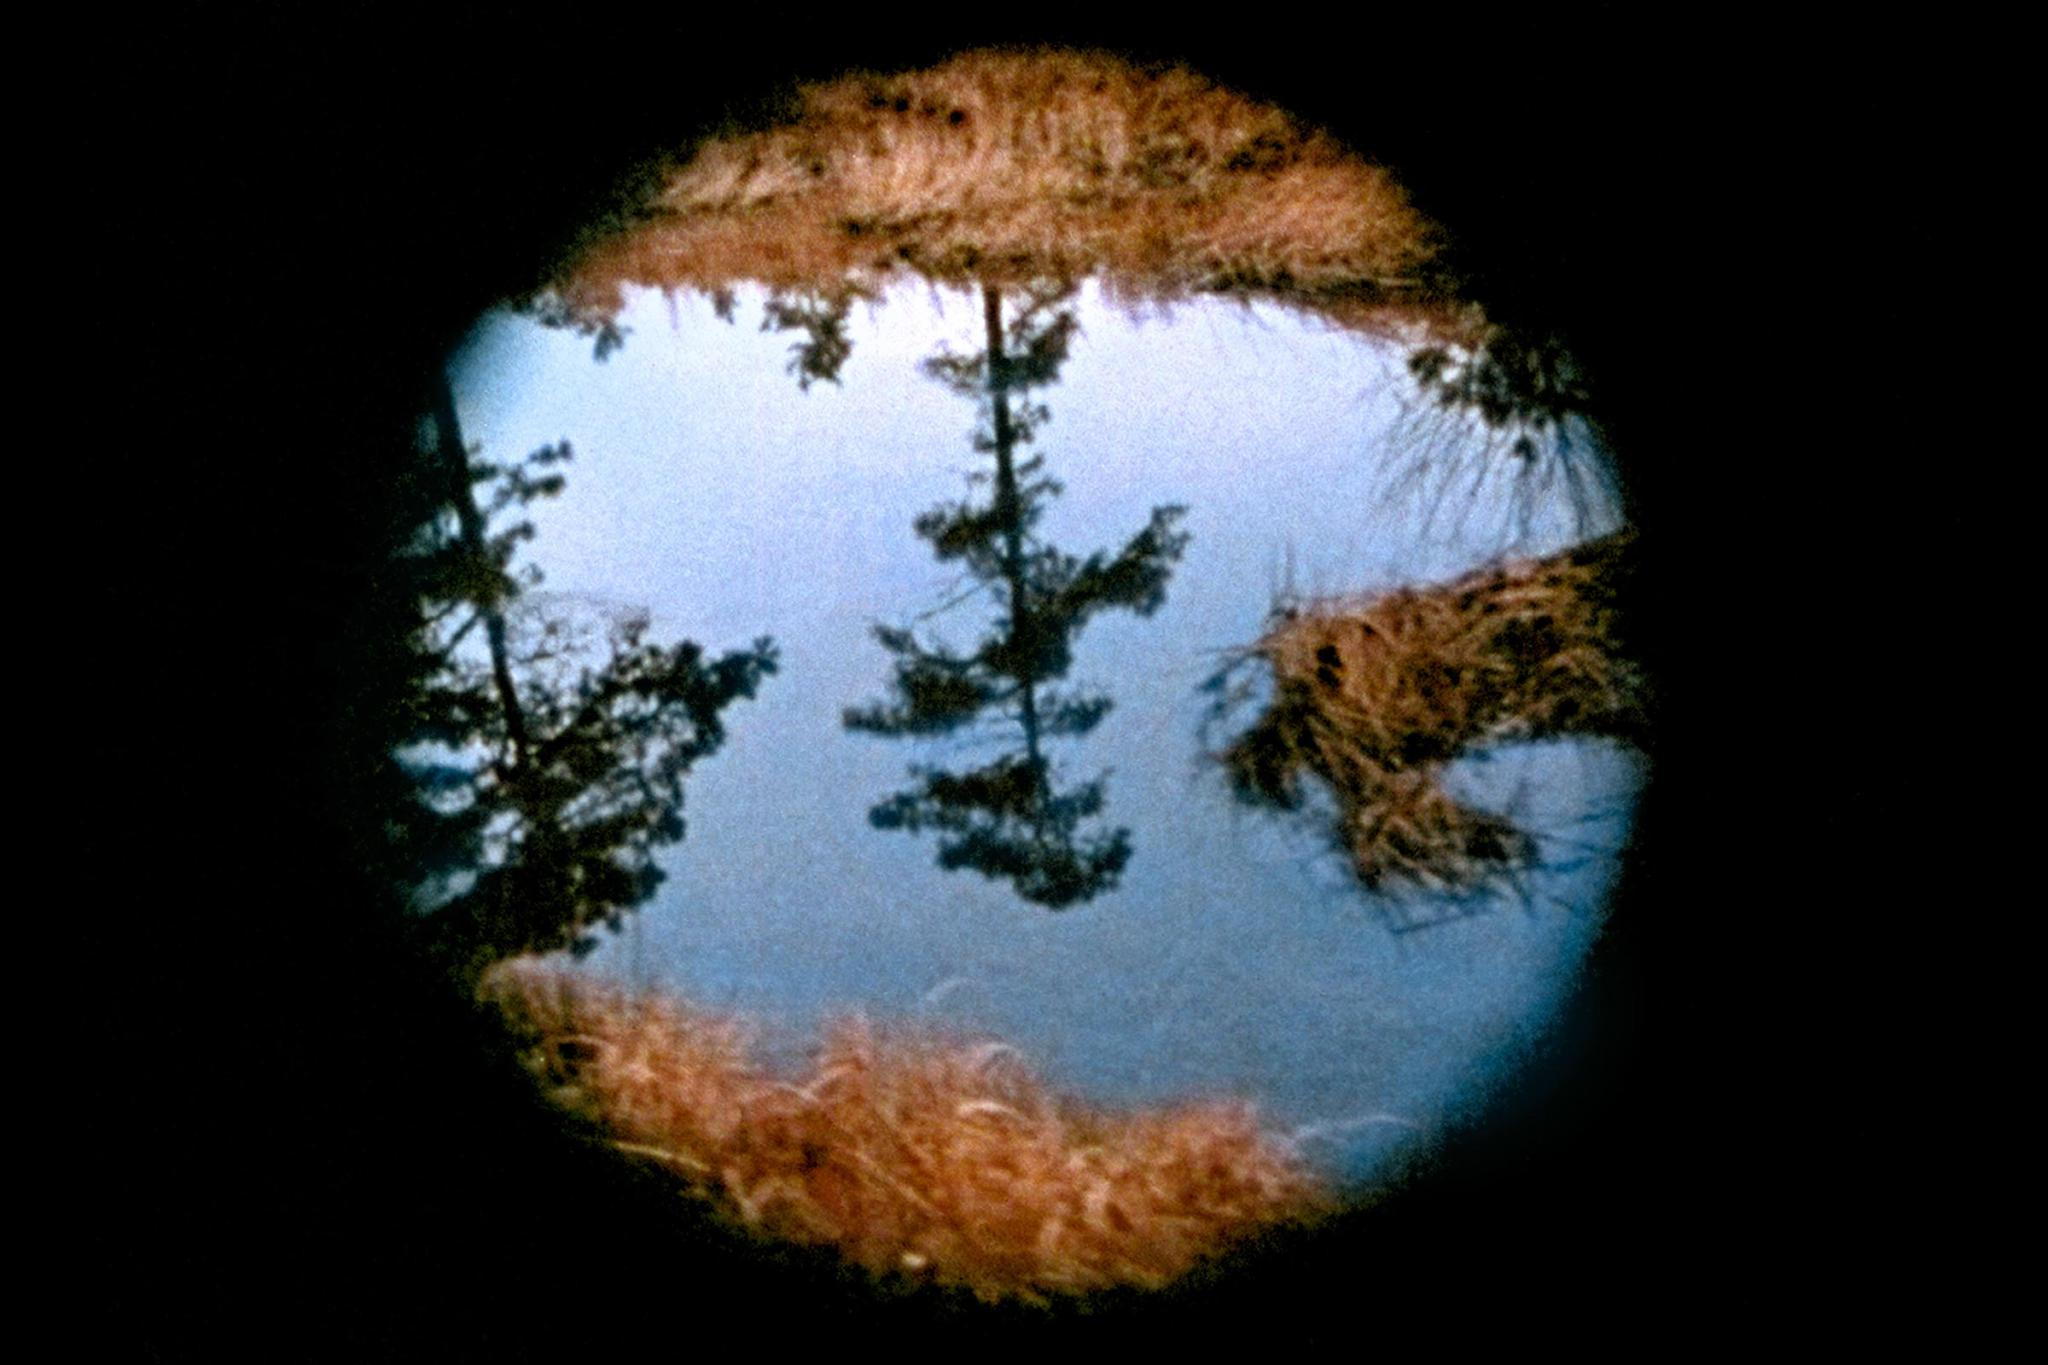 From Nancy Holt's film Pine Barrens. A view through a circular cut out showing a tree reflected upside down in water.